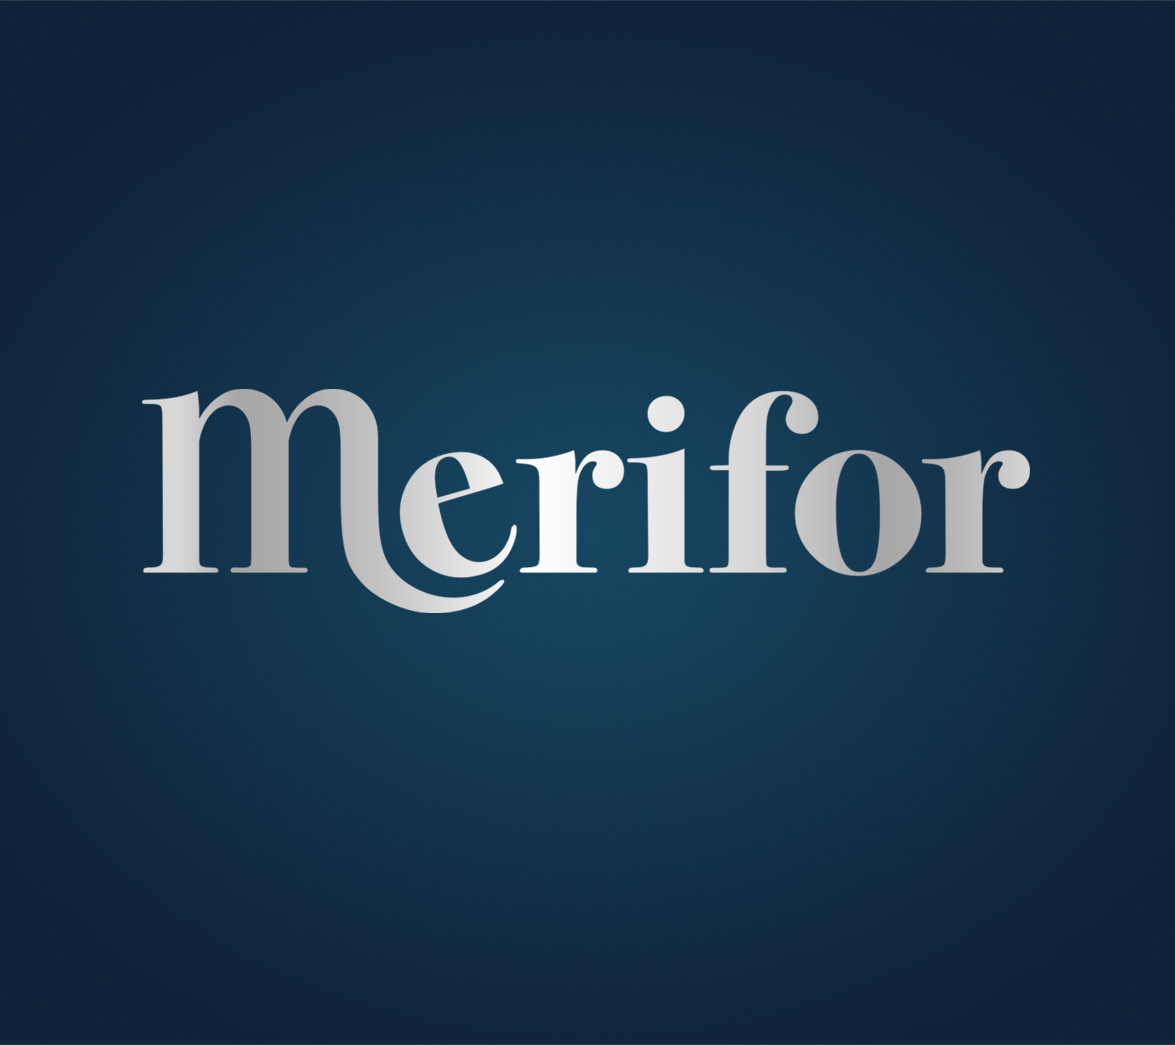 Logo design for mattress startup brand Merifor, designed by White Bear Studio